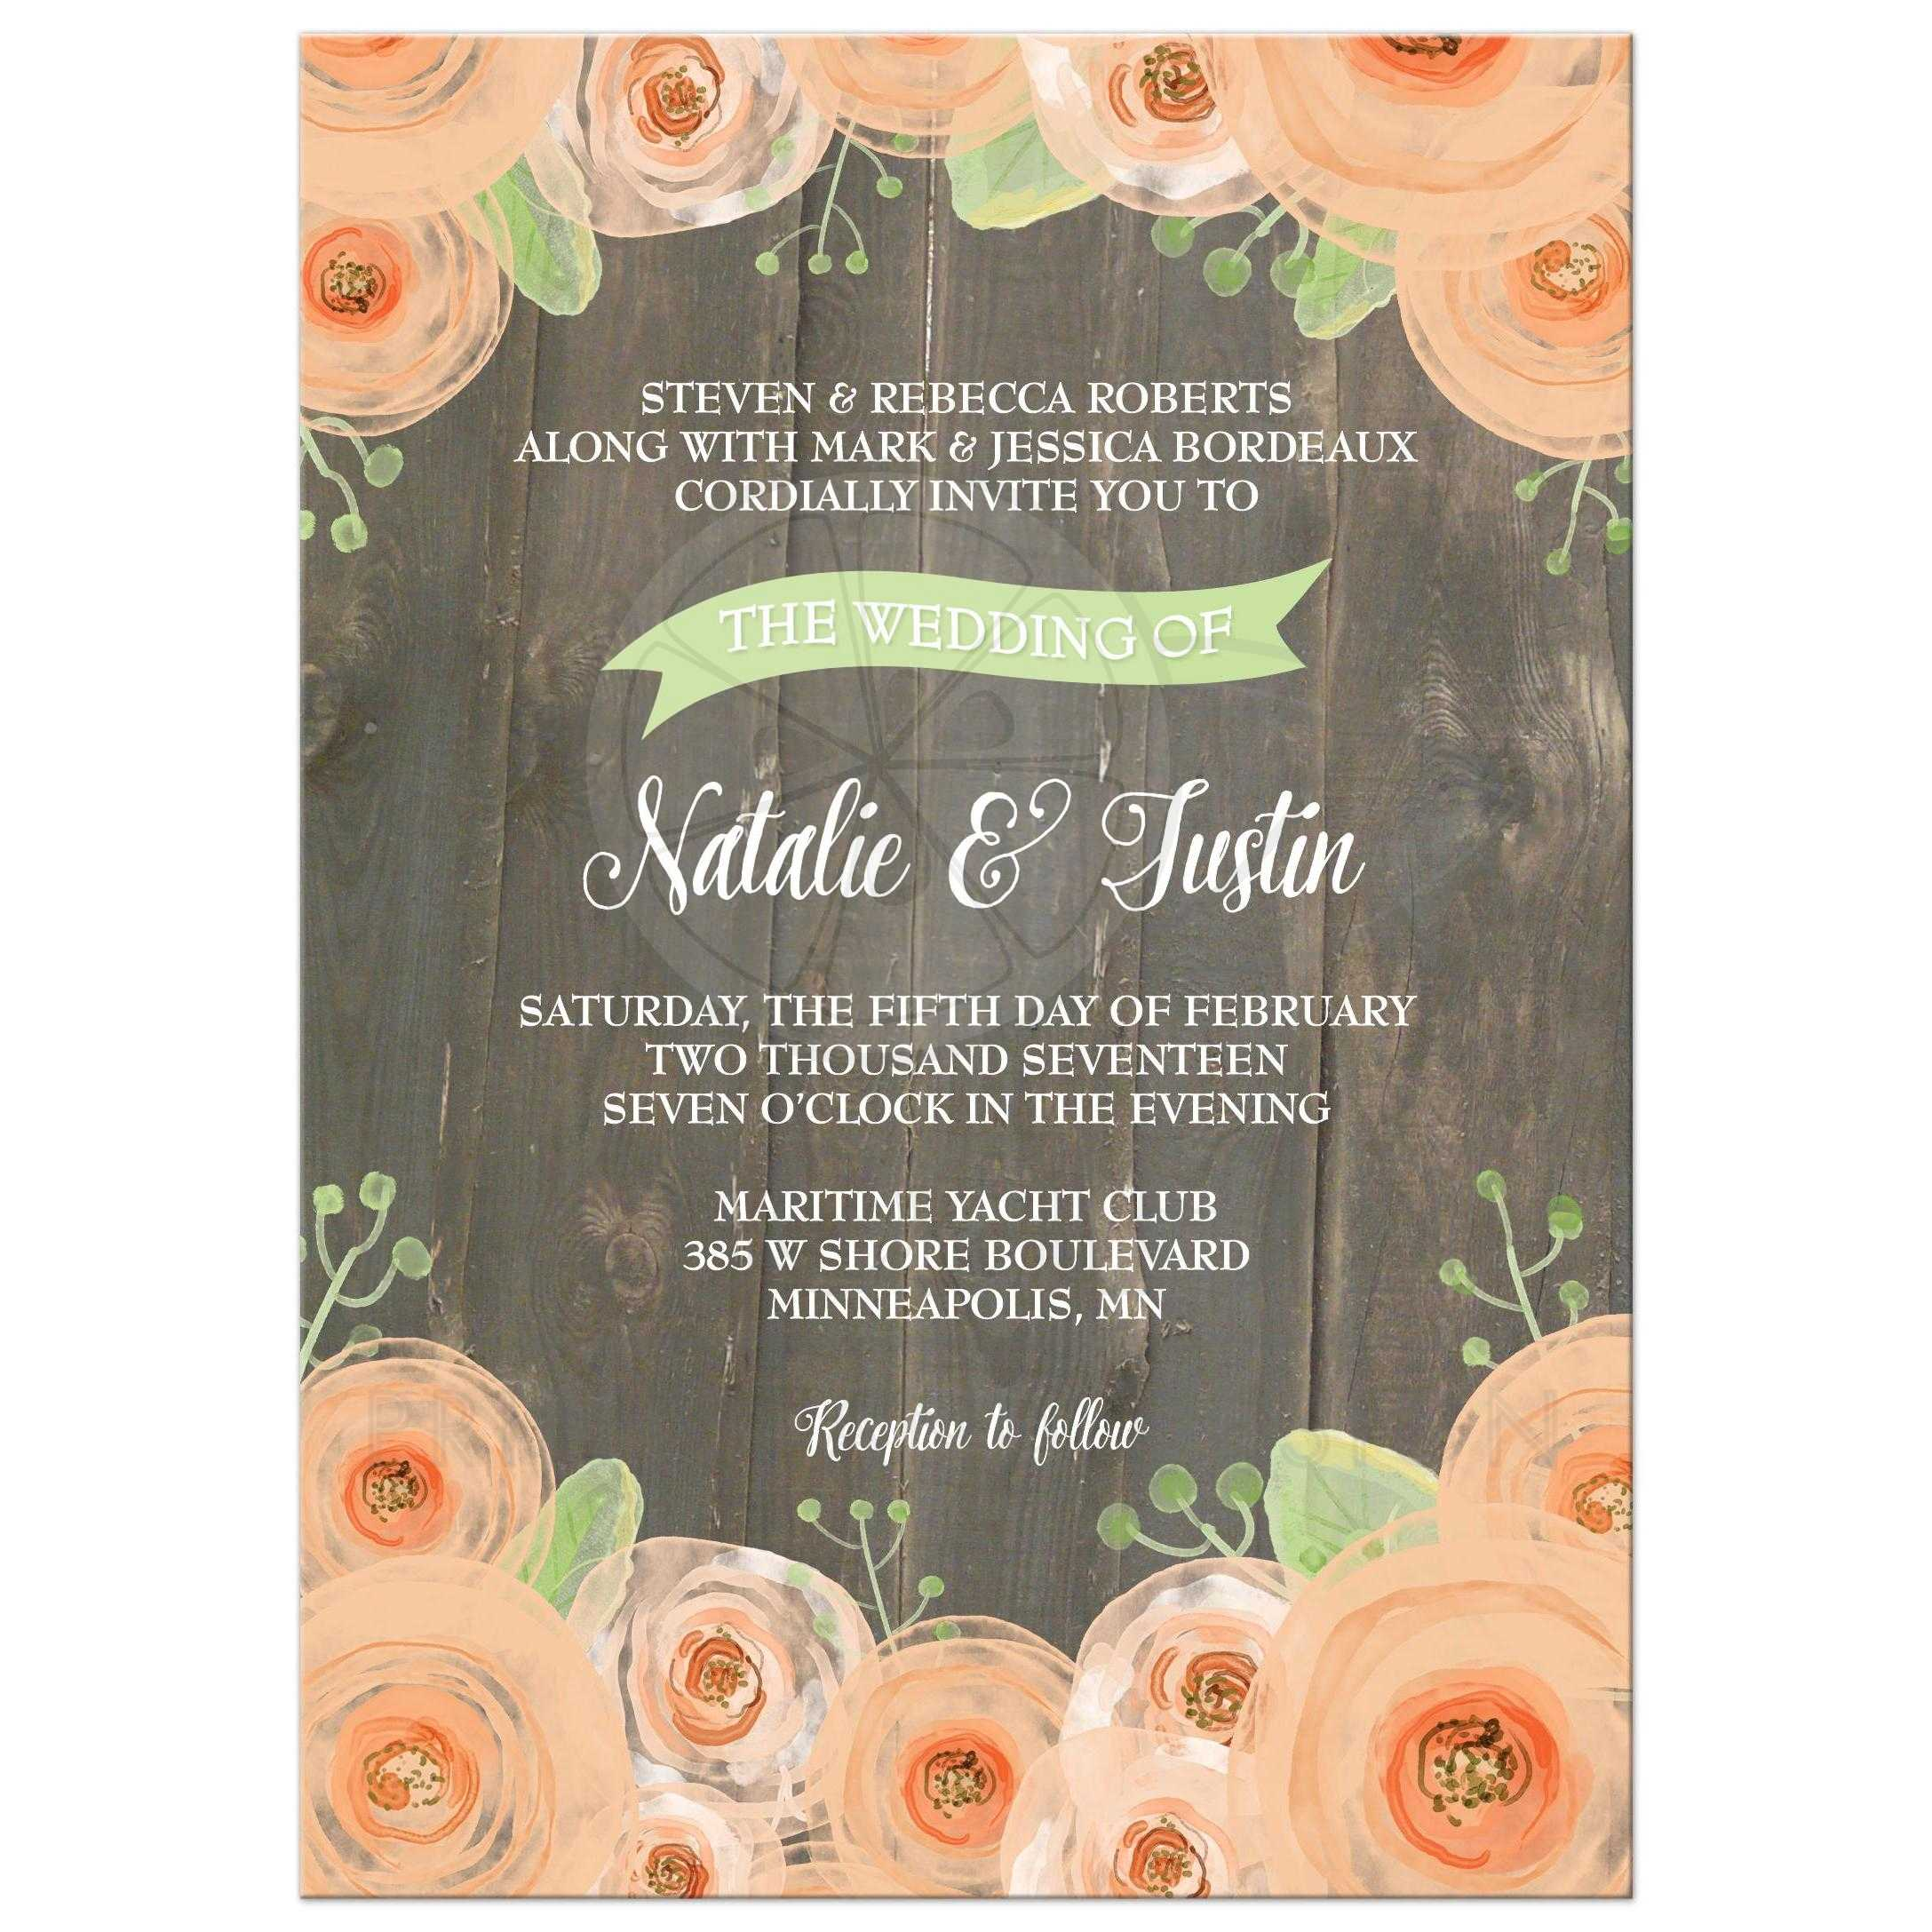 Wedding Invitation Rustic Wood Peach And Green Watercolor Flowers